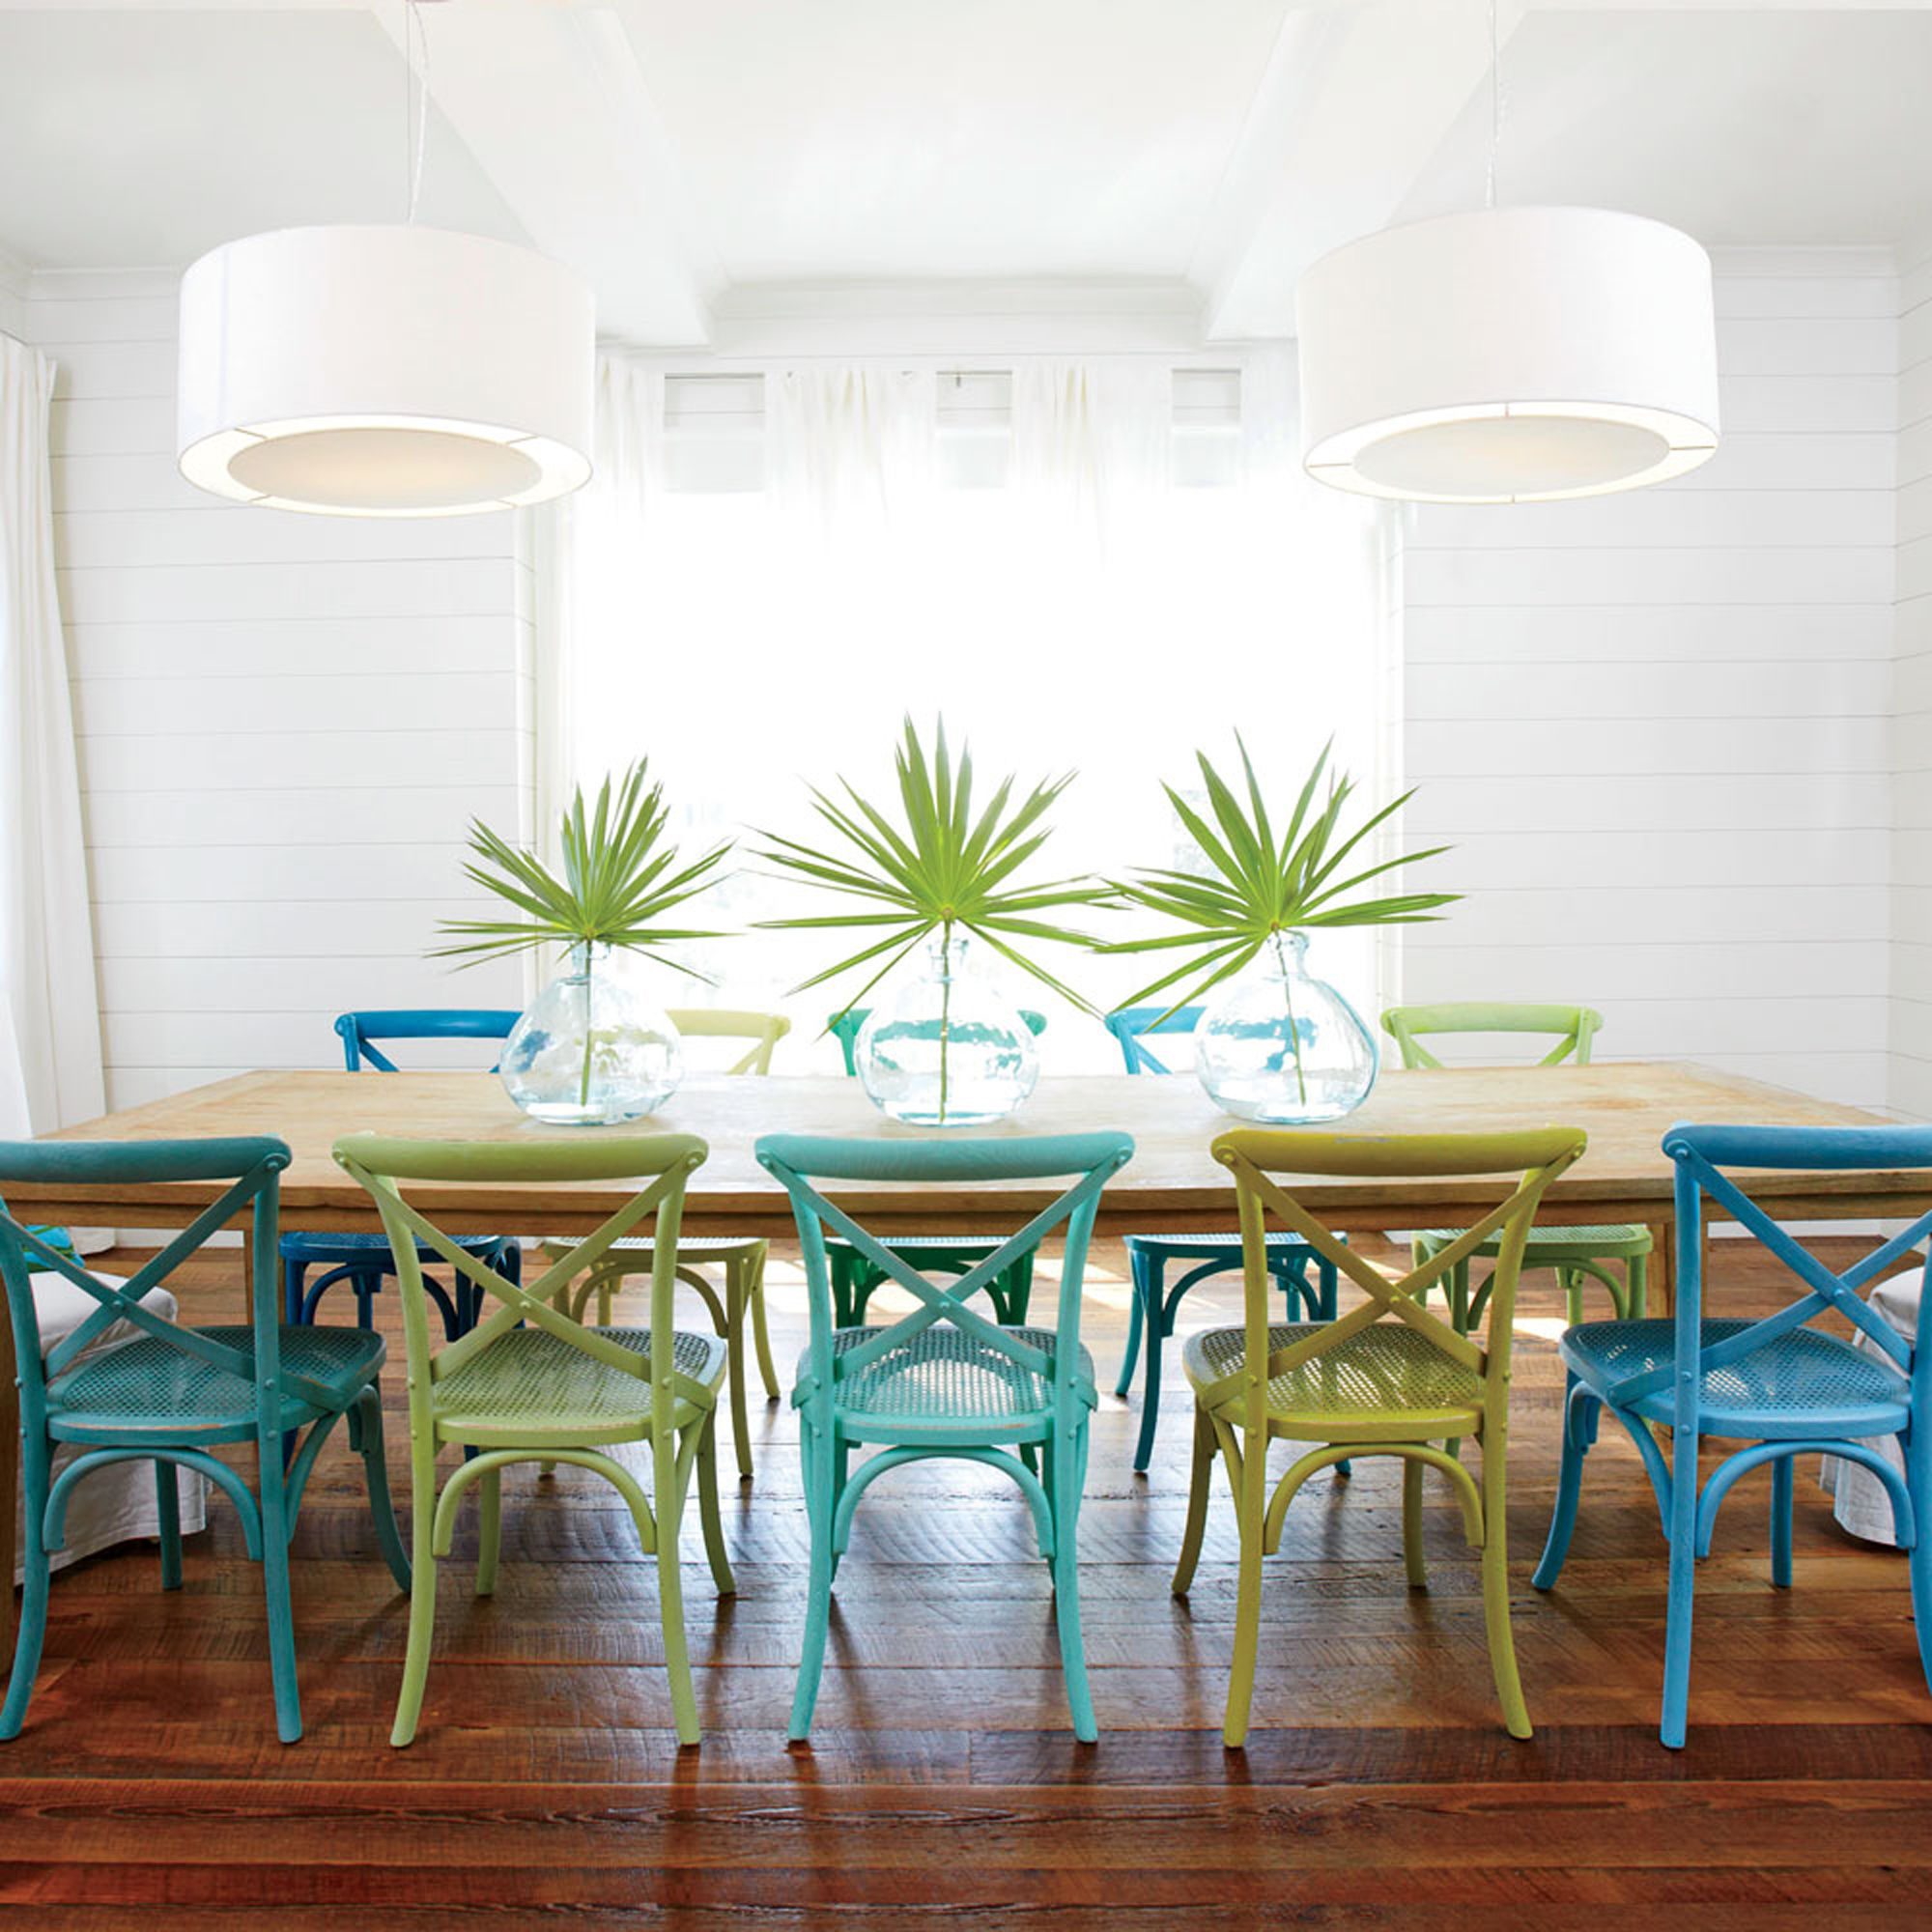 Creamy shiplap walls, mod white pendant lights, and ivory draperies channel bright seaside light, while reclaimed wood floors and a long wooden dining table give the crisp, just-built space a well-worn, well-loved feel.                             Idea Spotlight                             Customize furniture to make it your own. Homeowners Erika Klein and Andrea Alexander spray-painted wooden side chairs from Restoration Hardware in varying shades of blue and green for a cheerful, ultra-casual vibe in their Watersound, Florida dining room.